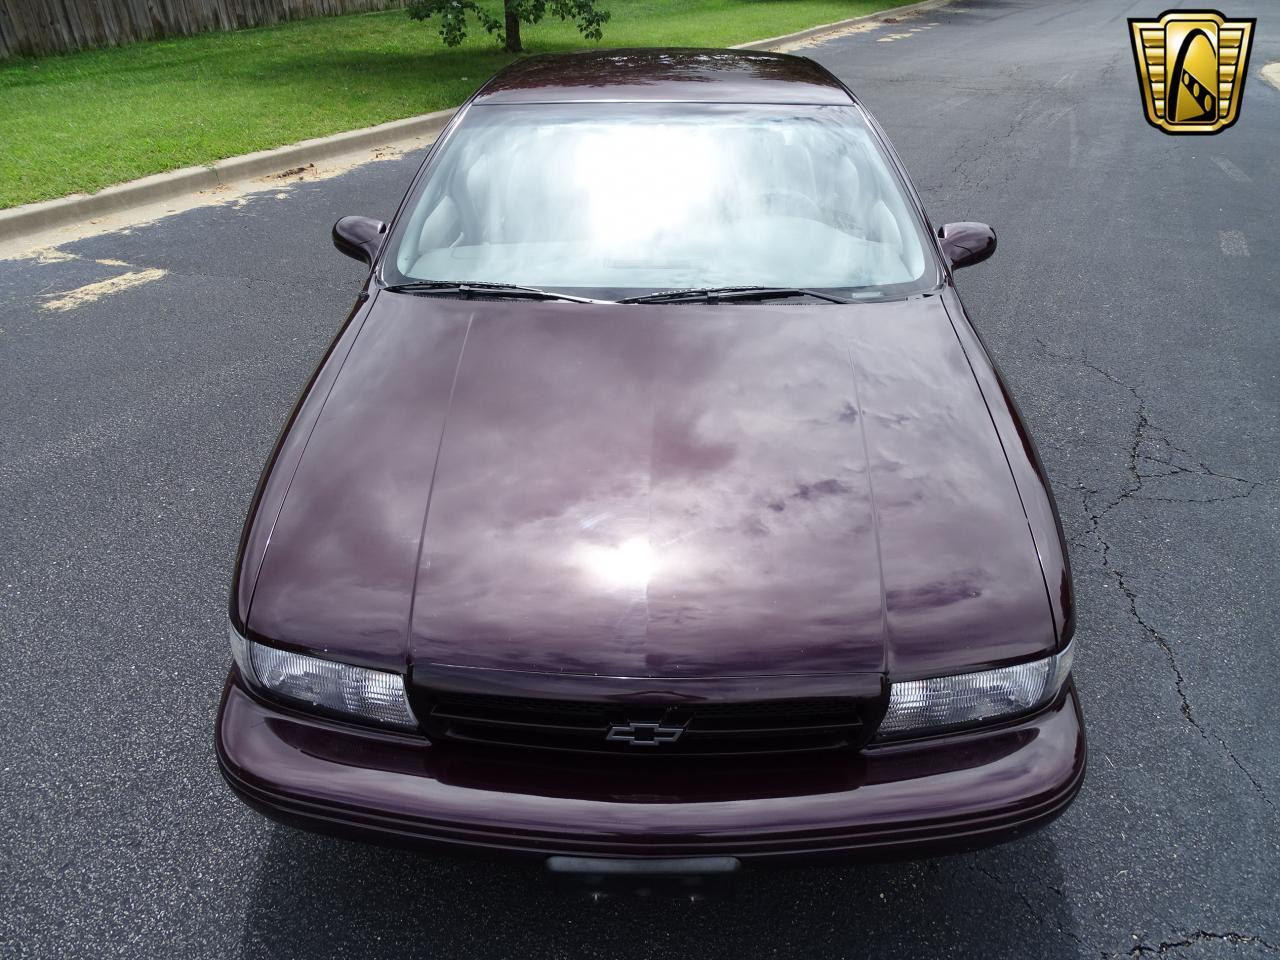 Large Picture of 1996 Impala located in Illinois - $19,000.00 - QB5K